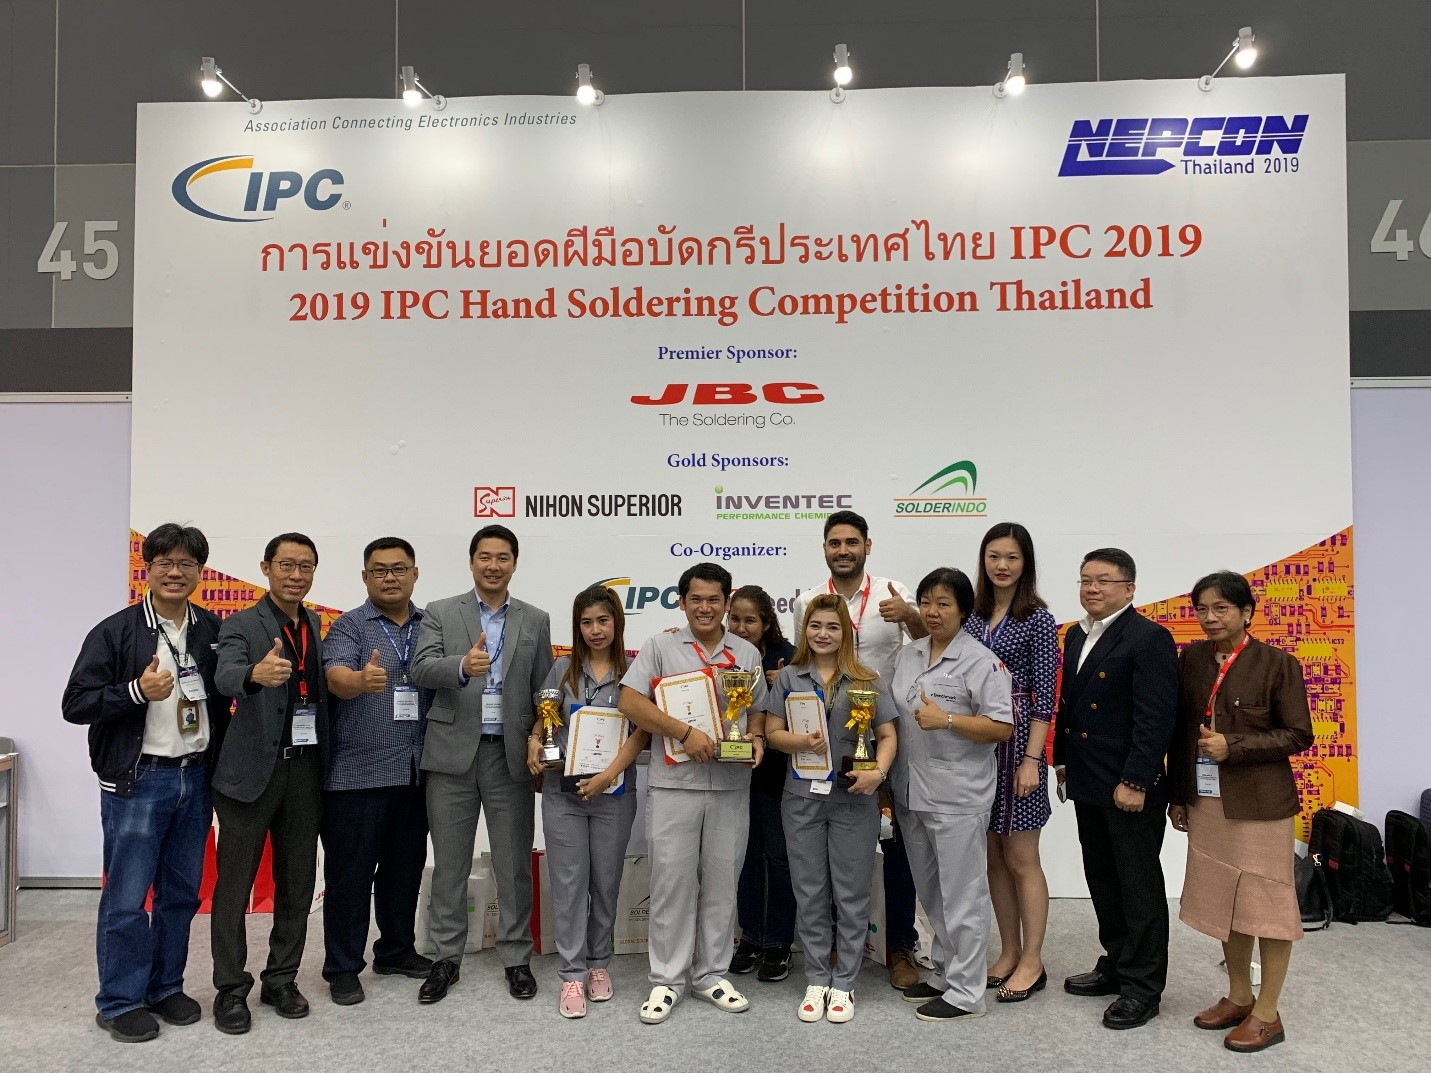 IPC Hand Soldering Competition Winner Crowned at NEPCON Thailand 2019 in Bangkok, Thailand